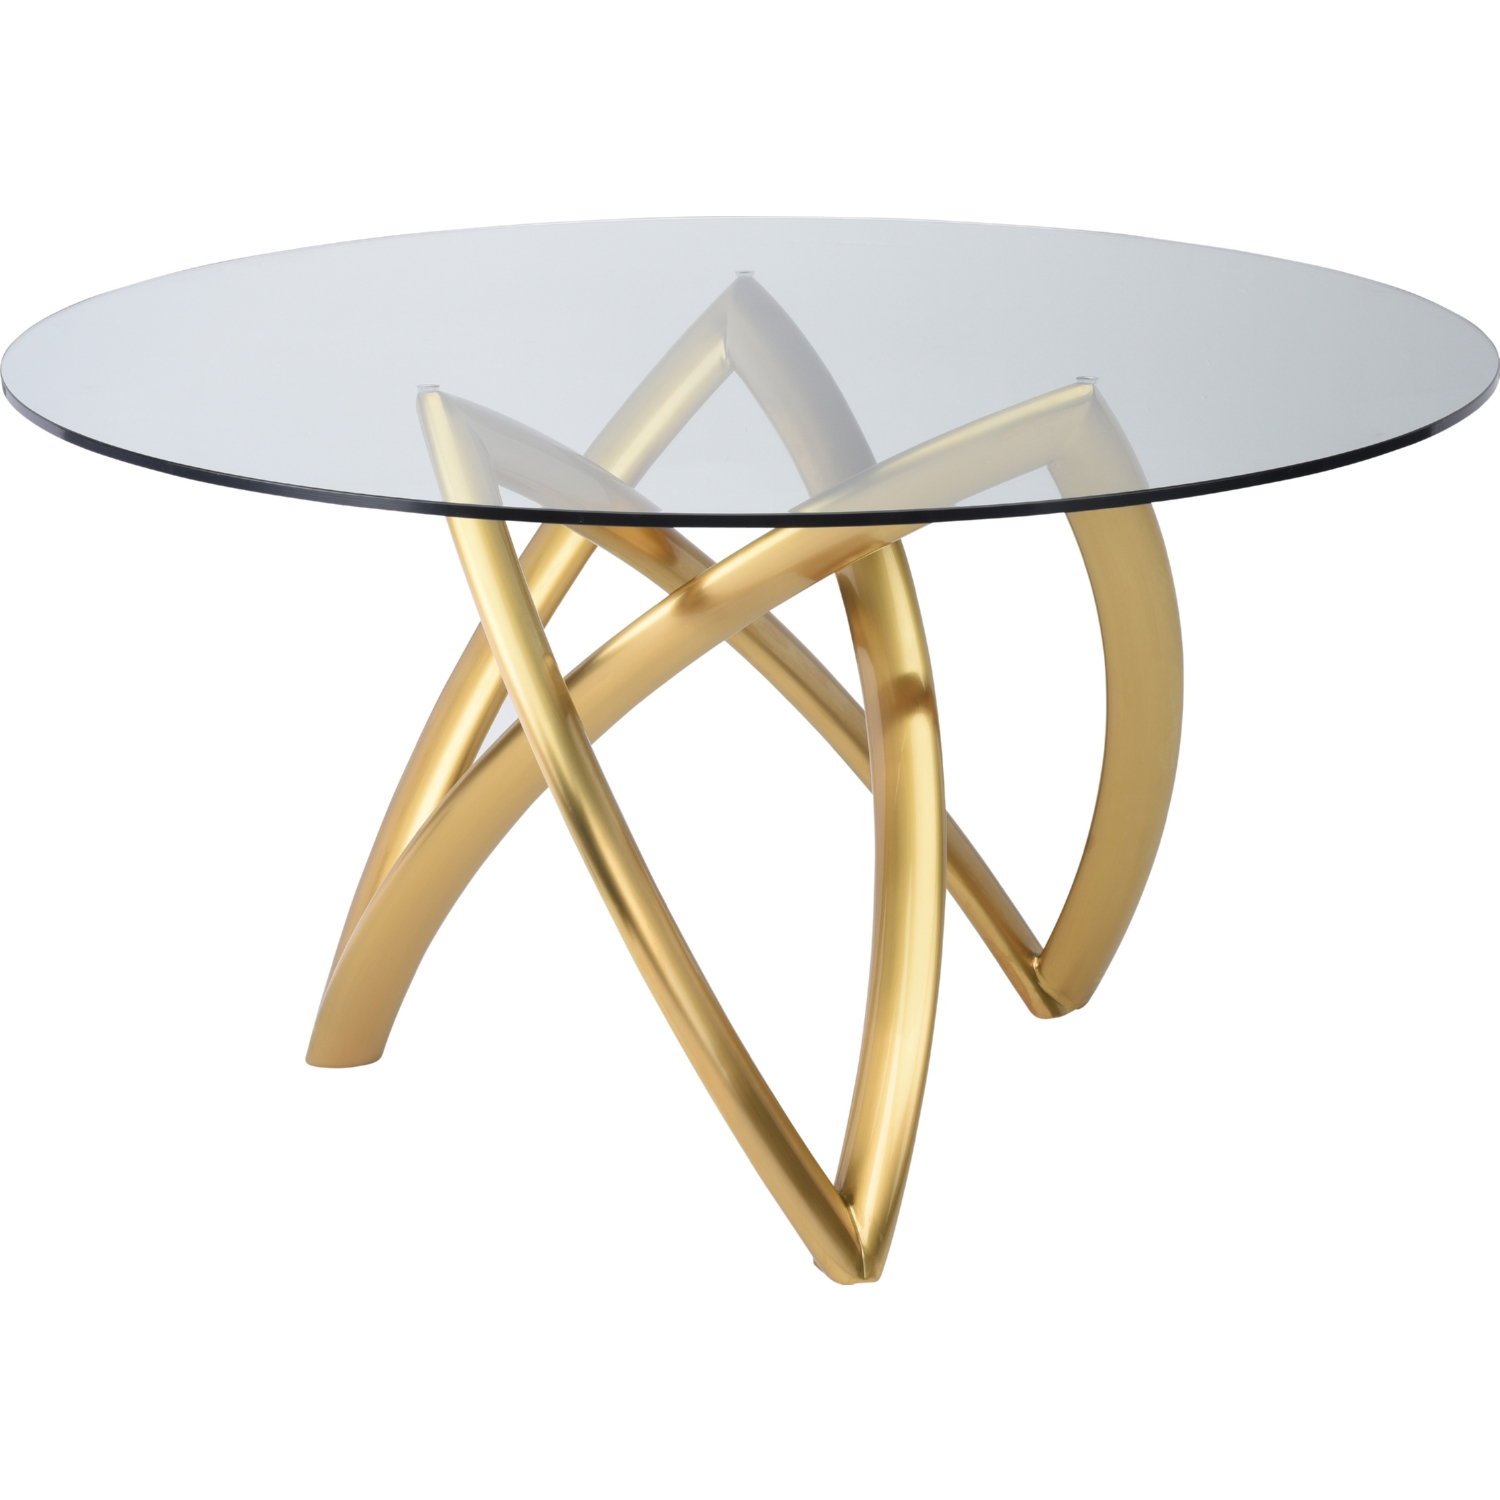 Nuevo Hgtb526 Martina 60 Quot Dining Table W Tempered Glass Top On Brushed Gold Base